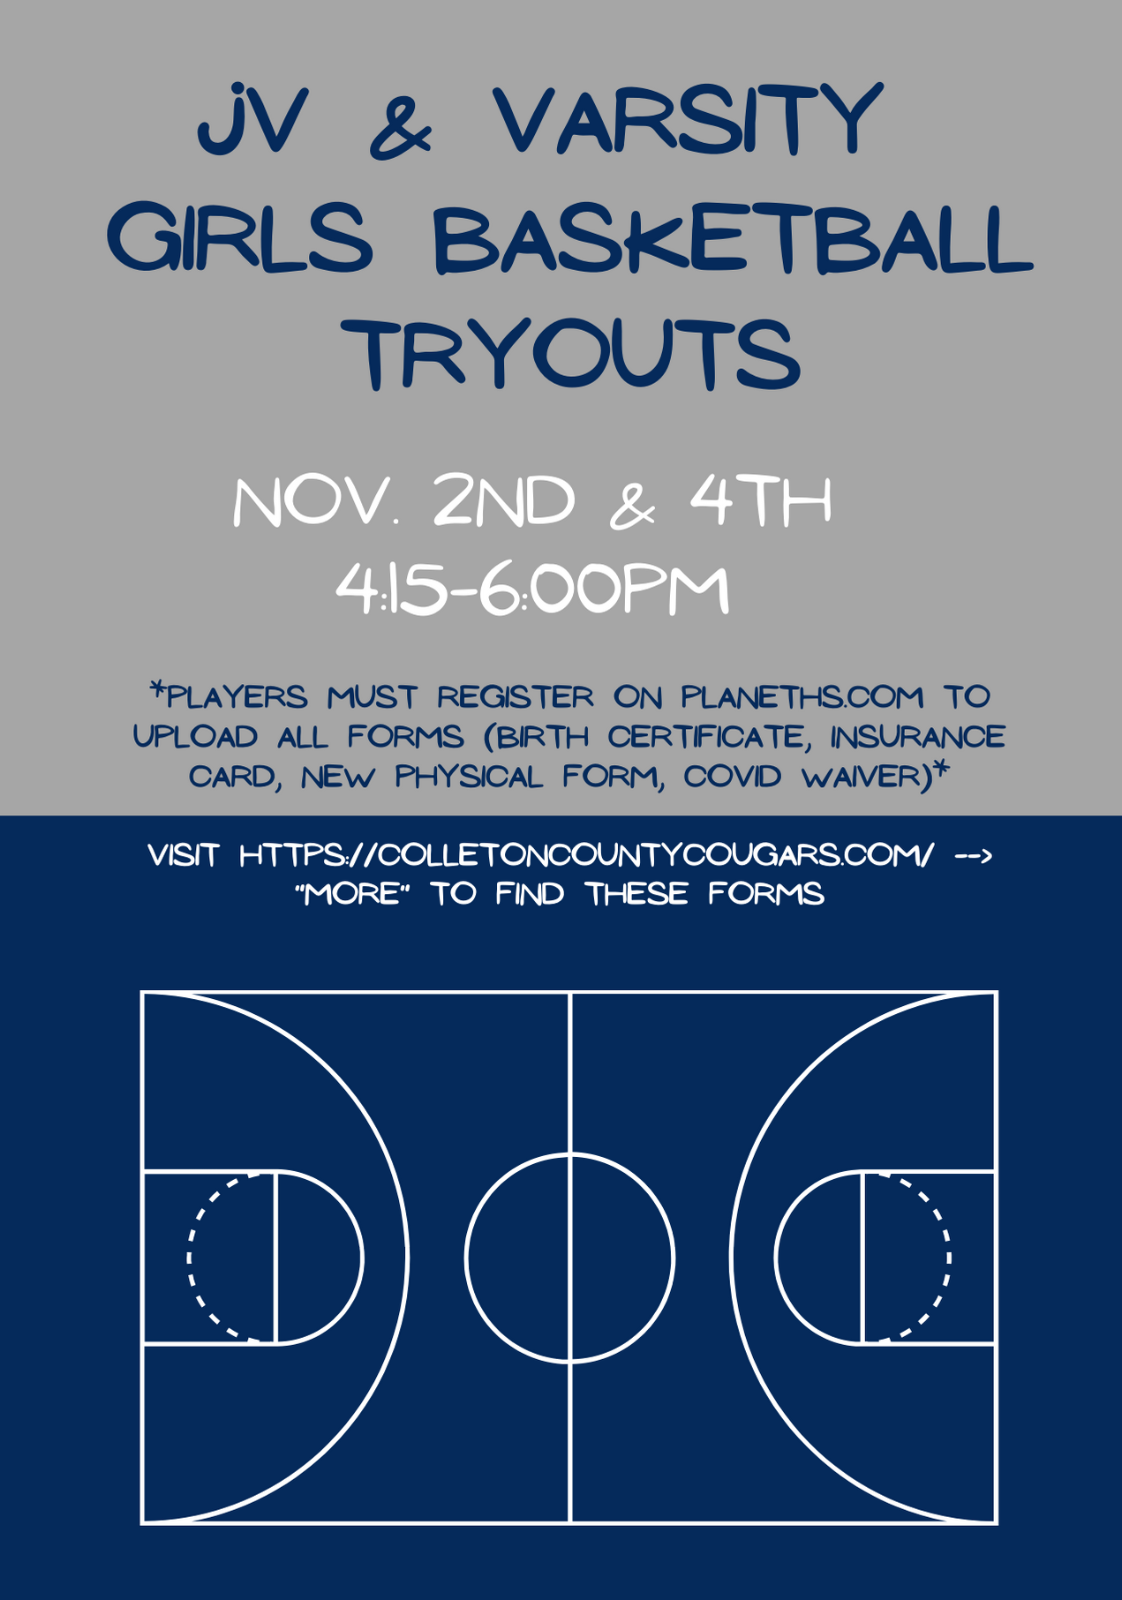 JV & Varsity Girls Basketball Tryouts! 11/2 and 11/4, 4:15-6 PM